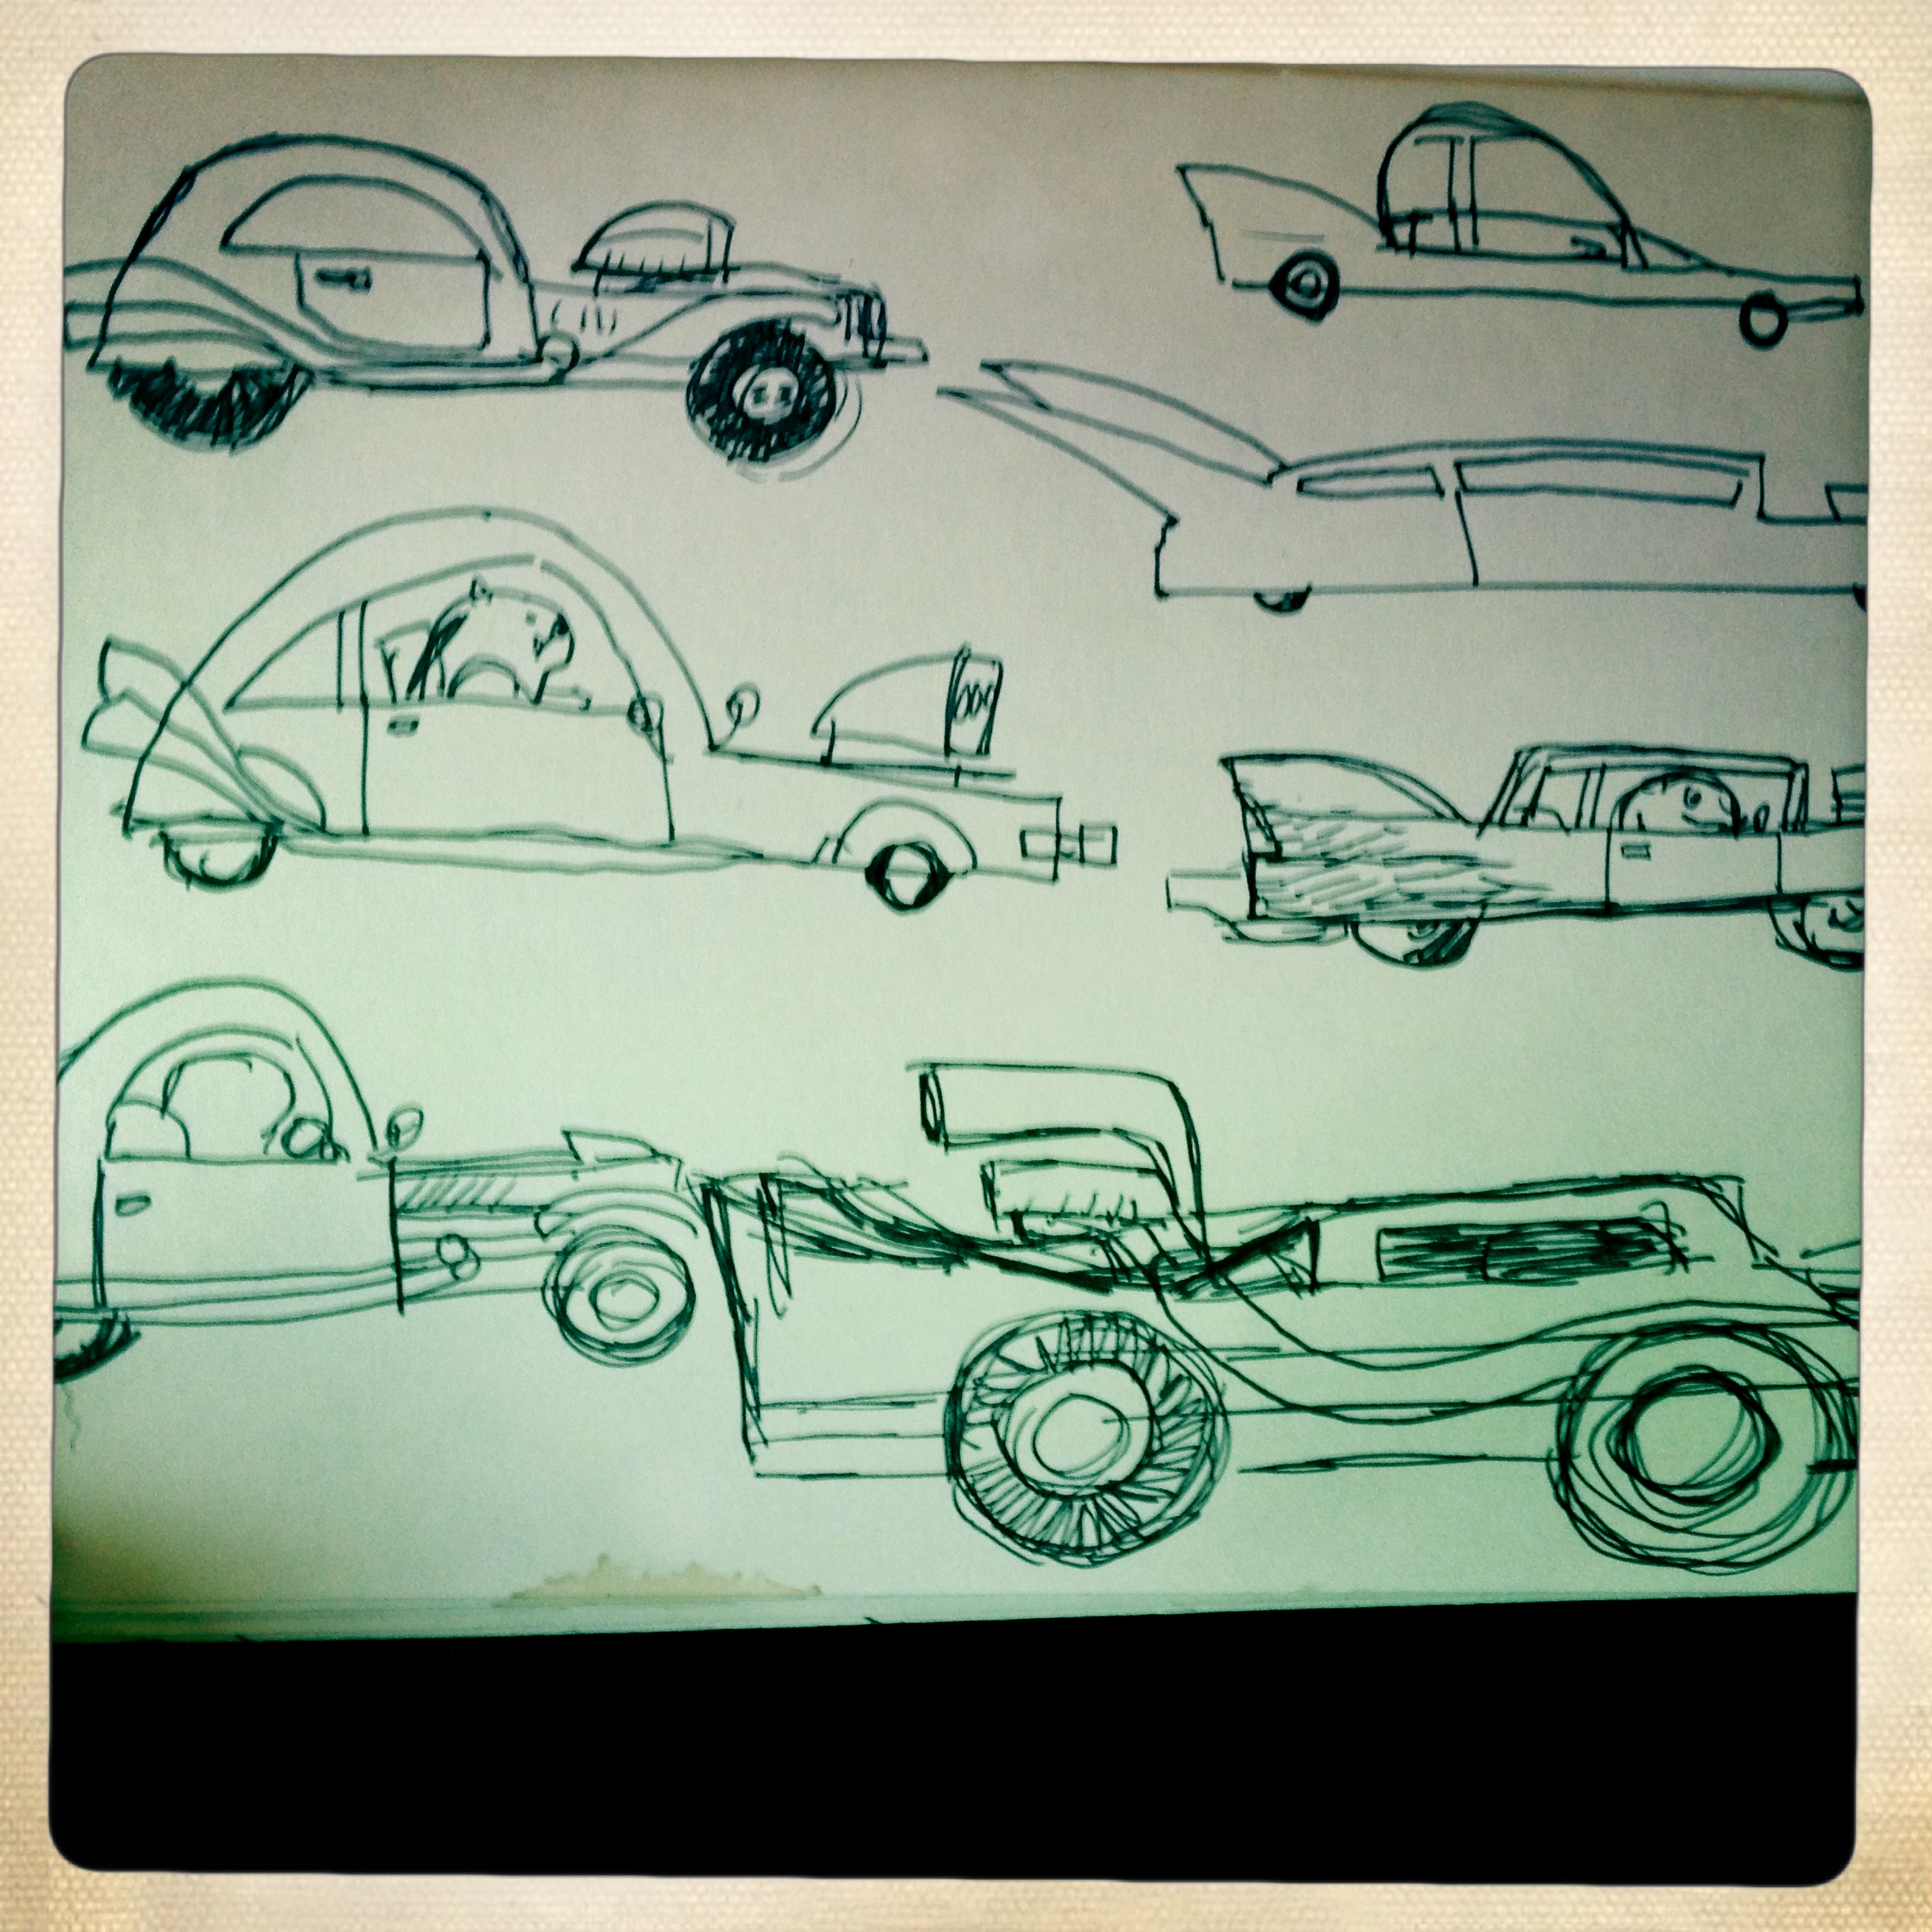 Worked on some car designs. Some of these made it into the book.